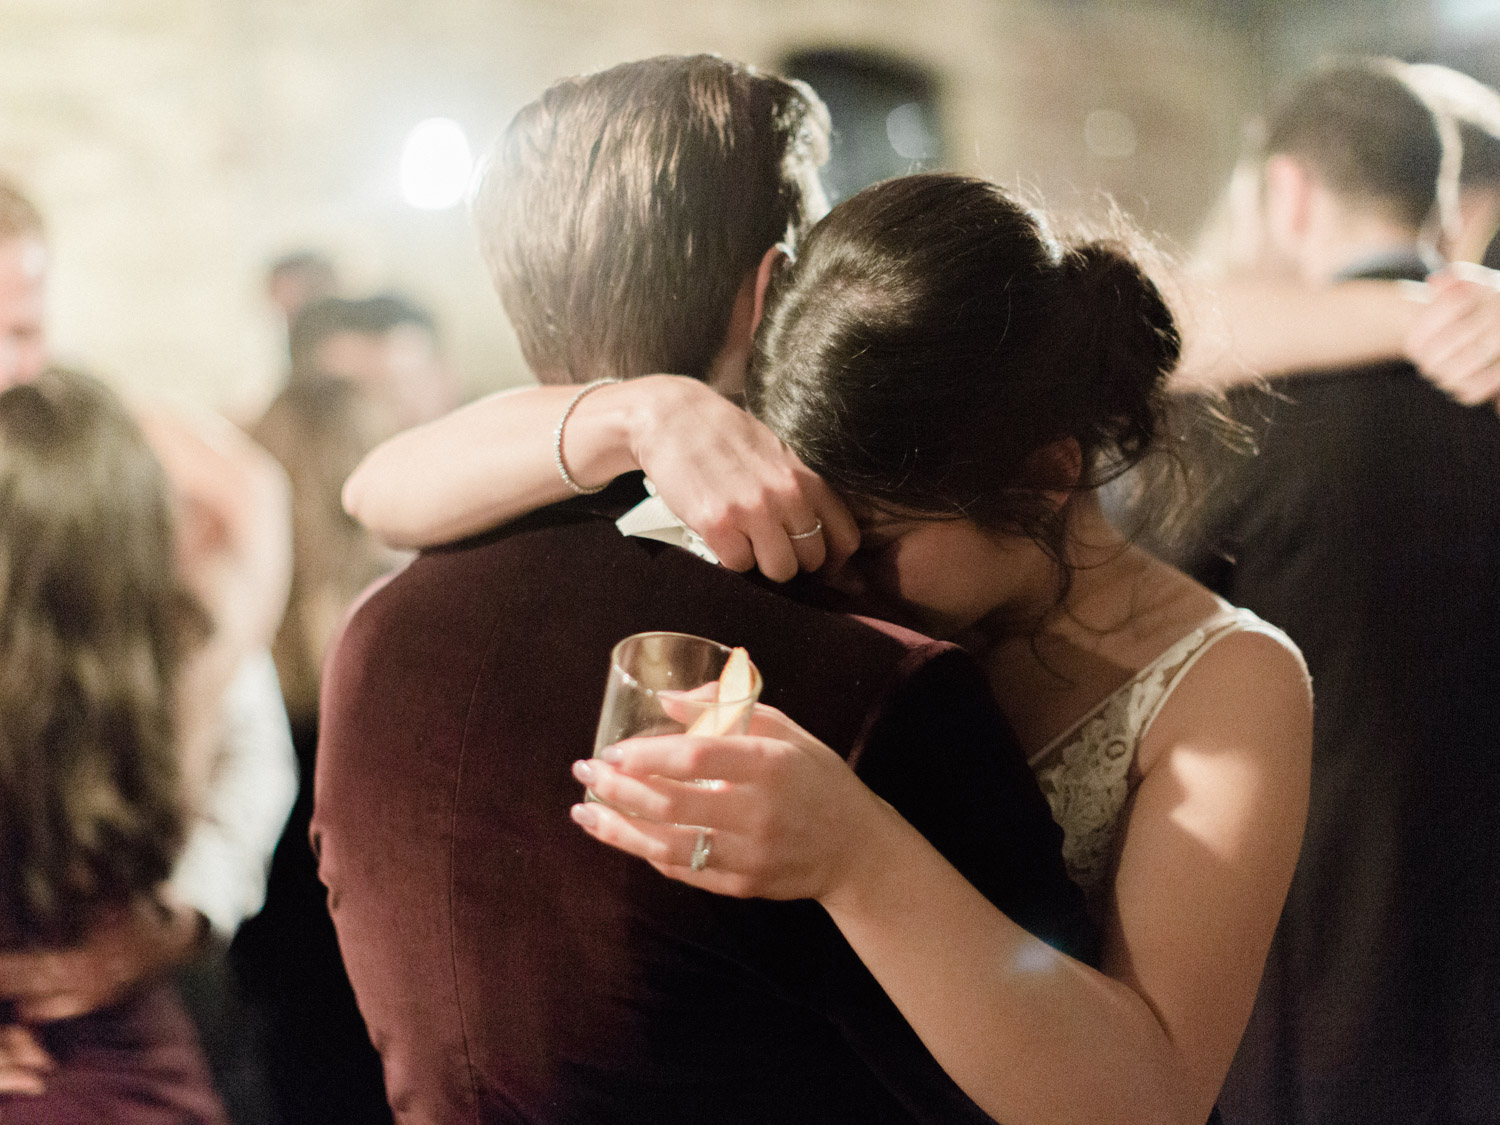 Beautiful first dance photograph of bride and groom at Italian winter wedding in downtown Toronto.  Captured by Toronto wedding photography Corynn Fowler Photography.